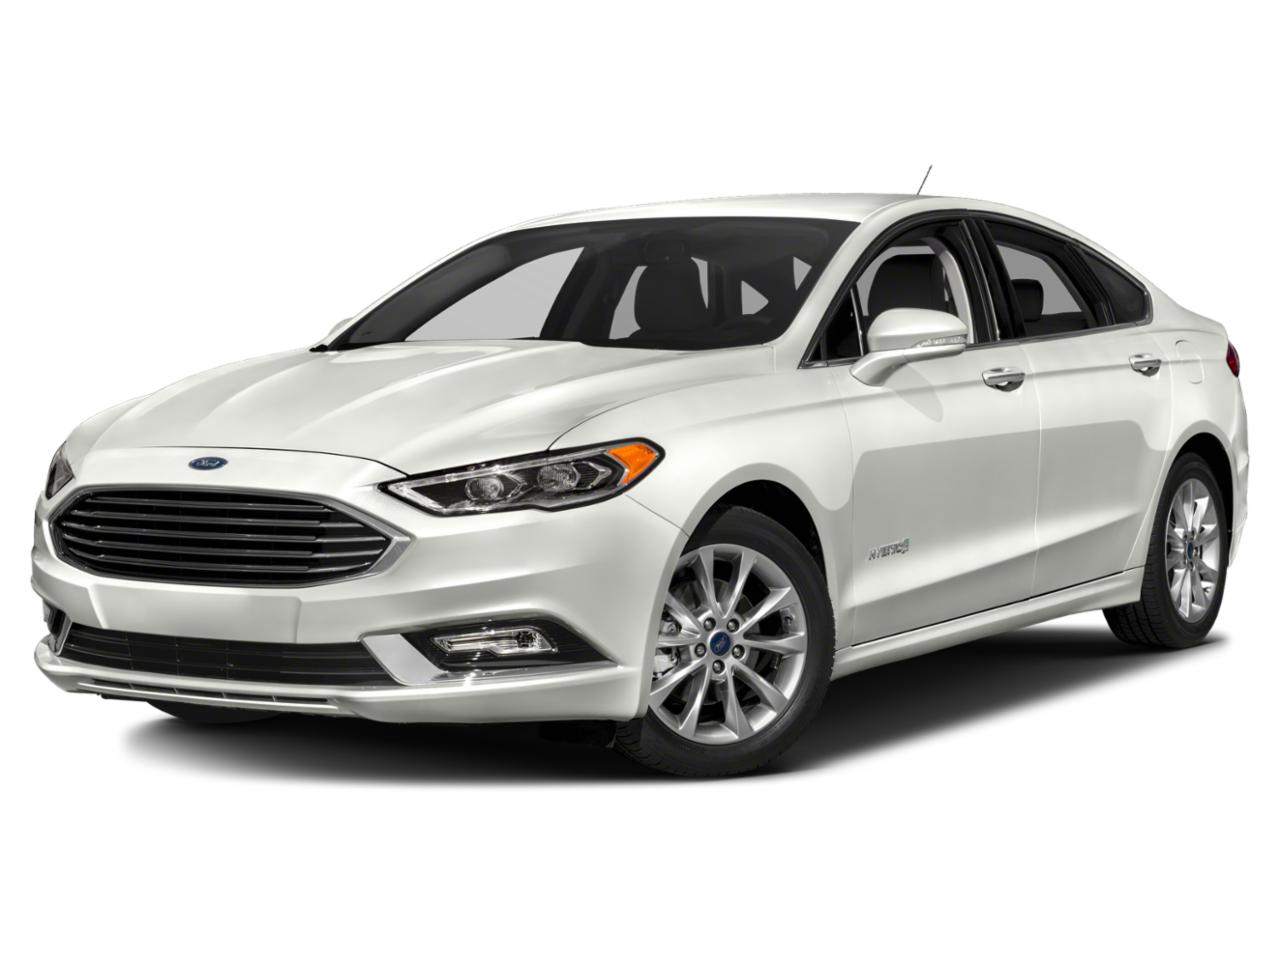 2018 Ford Fusion Hybrid Vehicle Photo in Killeen, TX 76541